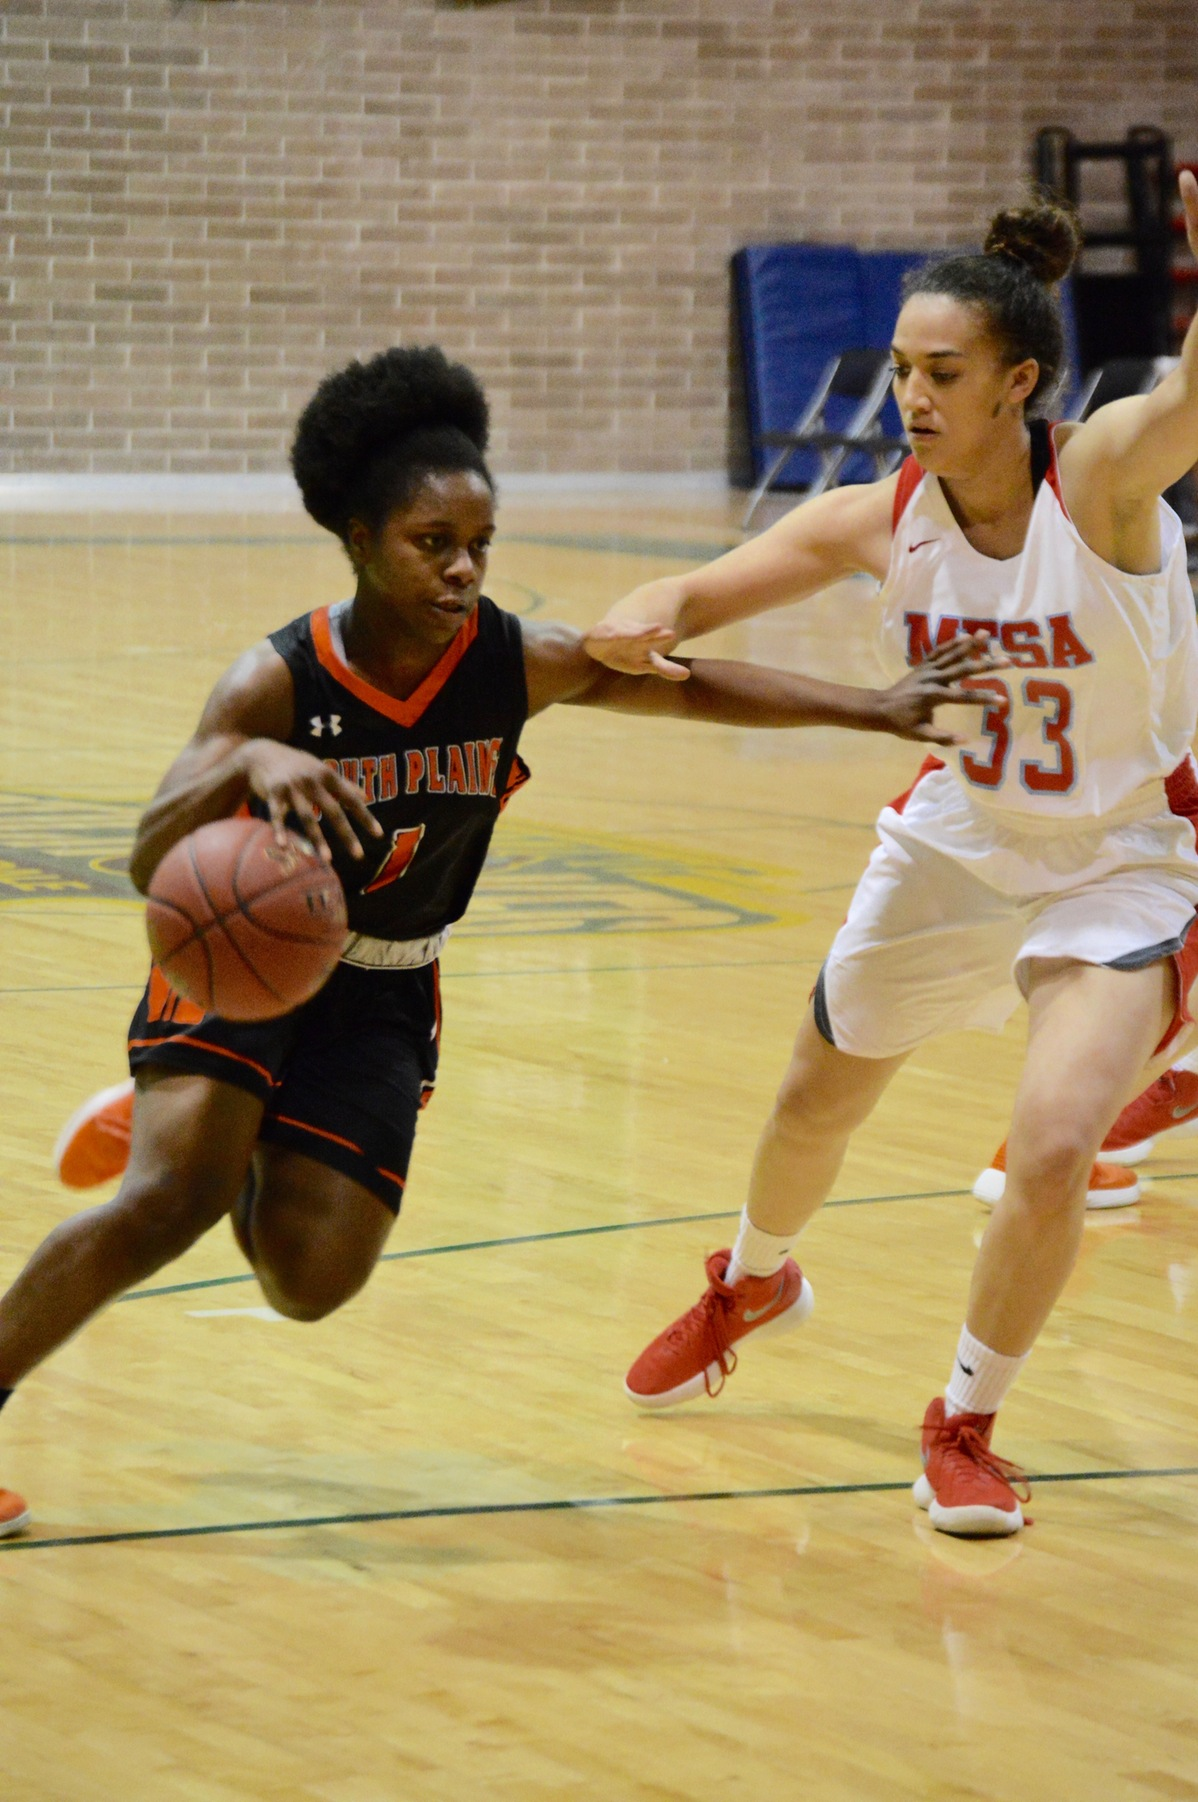 Lady Texans fall to Mesa 74-65 Thursday in Scottsdale